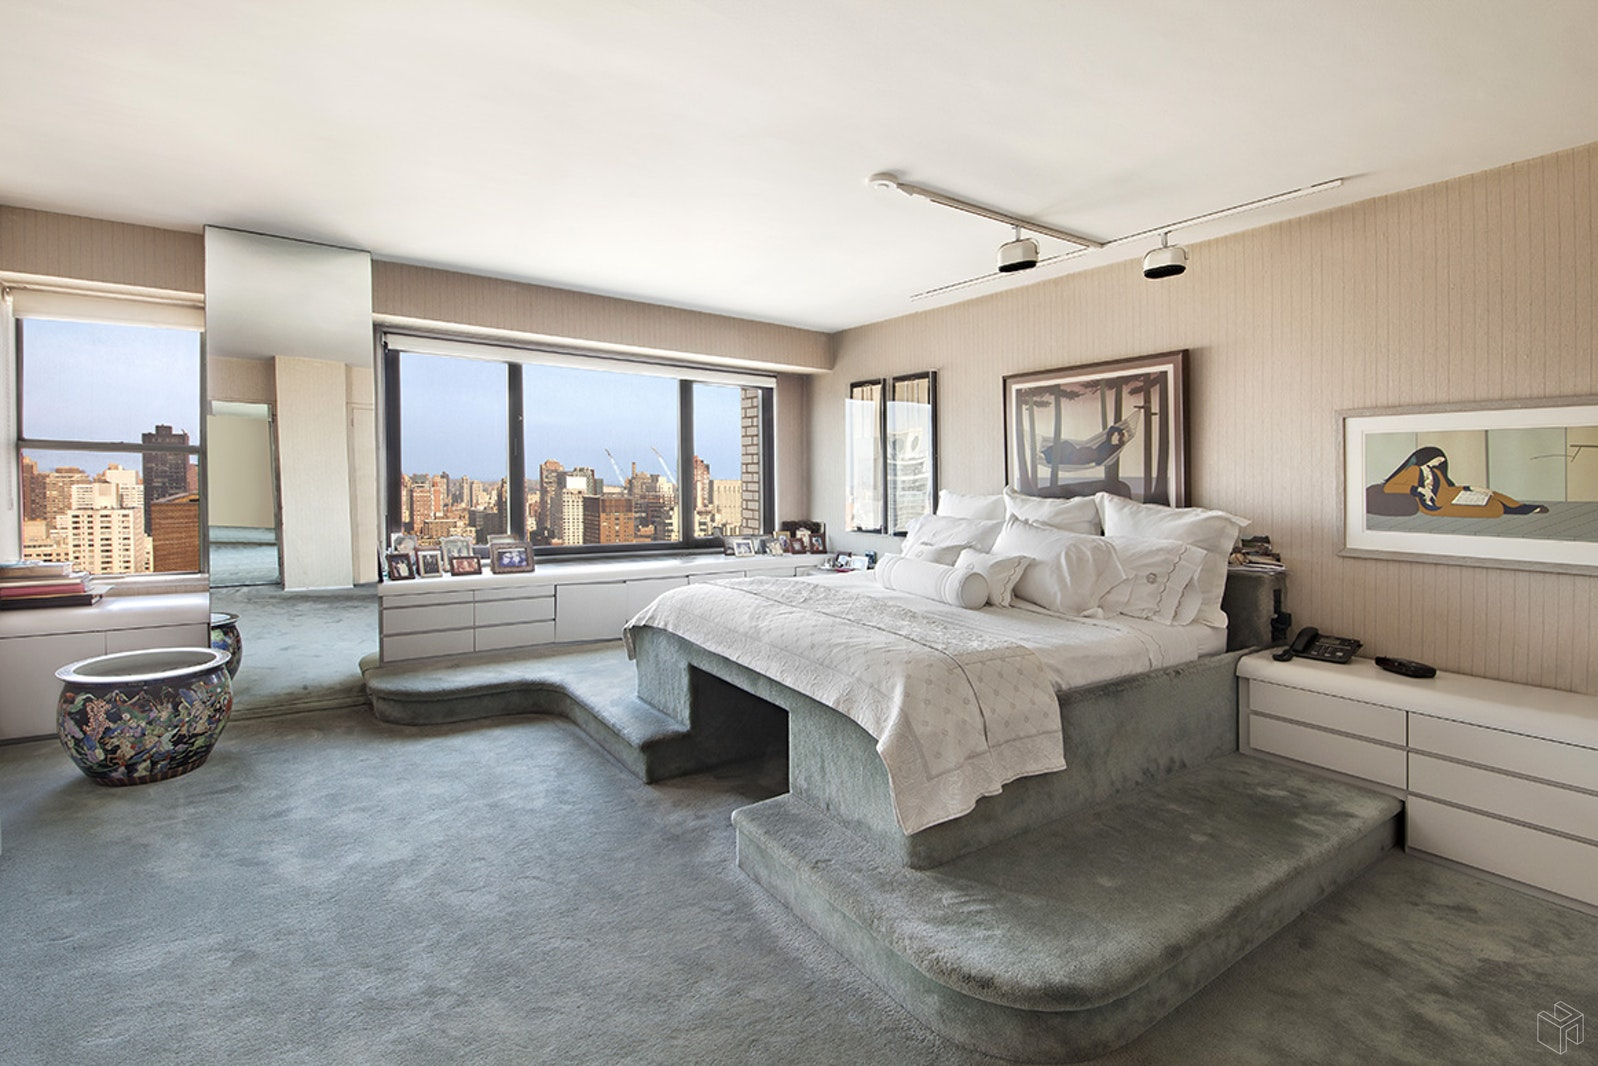 303 East 57th Street 39de, Midtown East, NYC, 10022, $1,800,000, Property For Sale, Halstead Real Estate, Photo 3